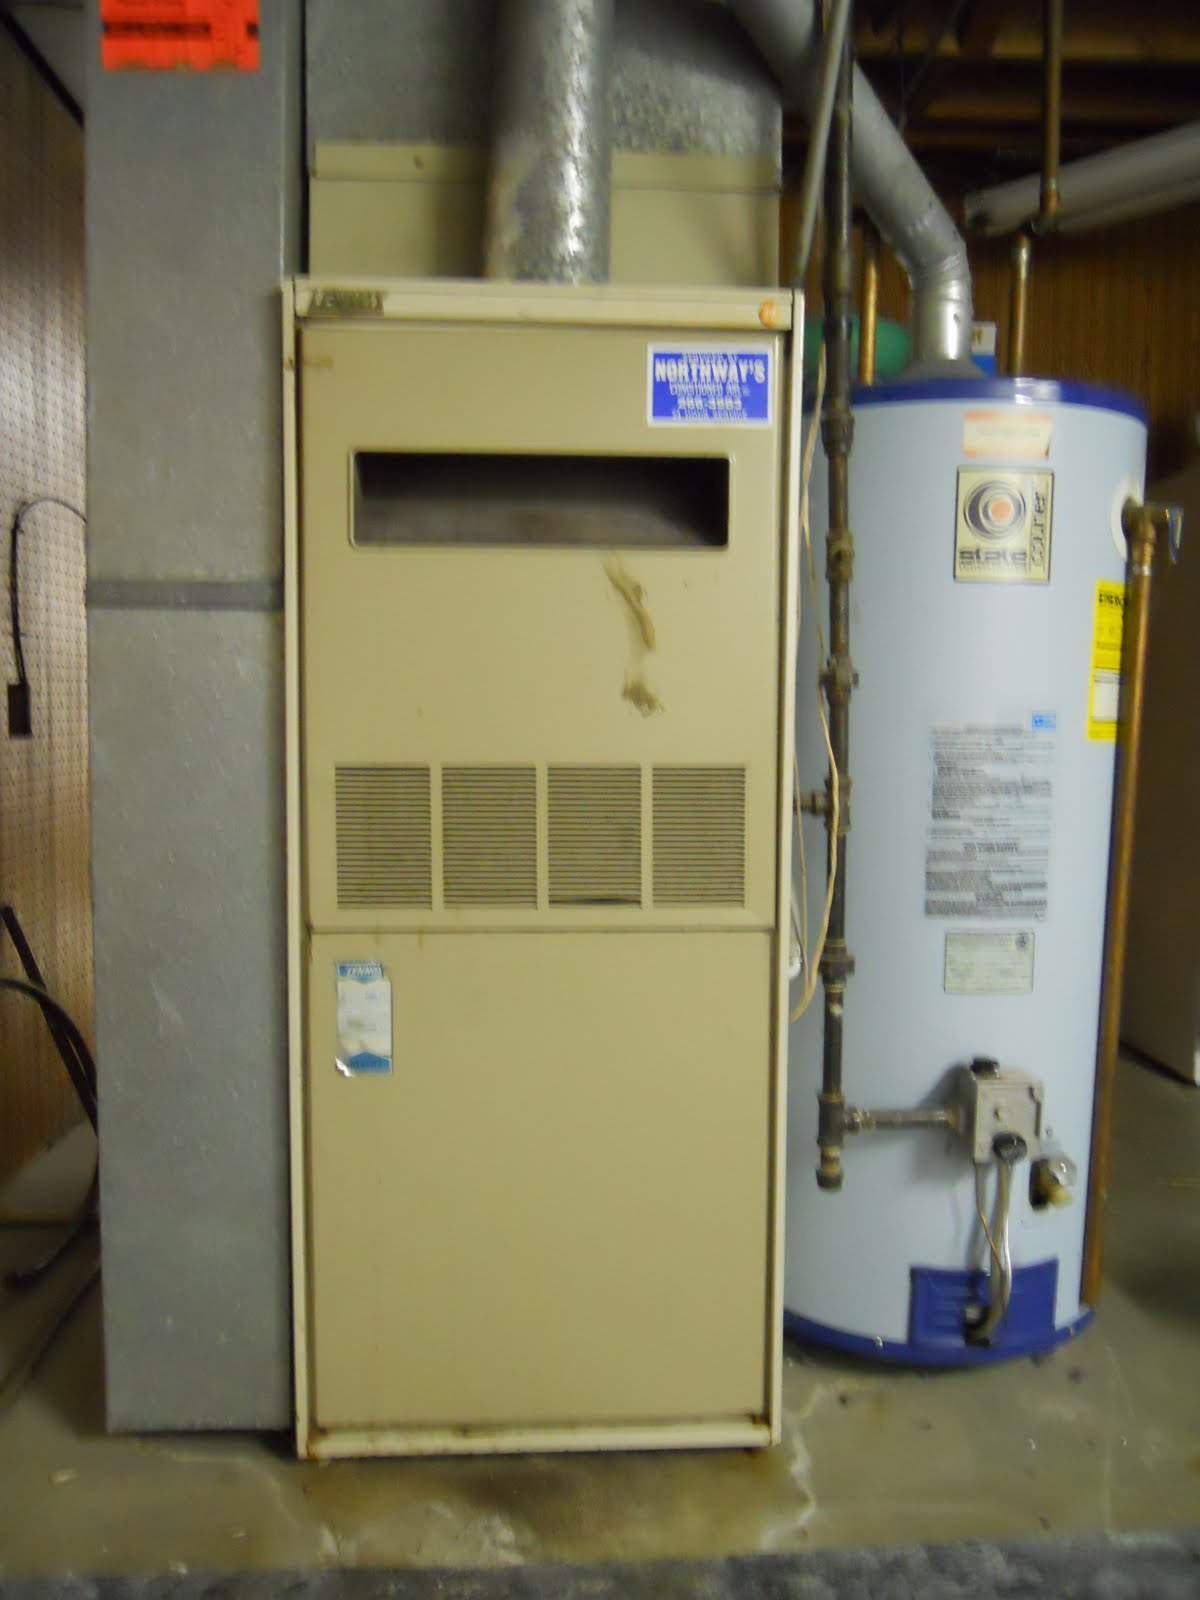 #2F386D Day's View: July 2010 Highly Rated 1559 Can Central Air Be Installed In An Old House wallpapers with 1200x1600 px on helpvideos.info - Air Conditioners, Air Coolers and more